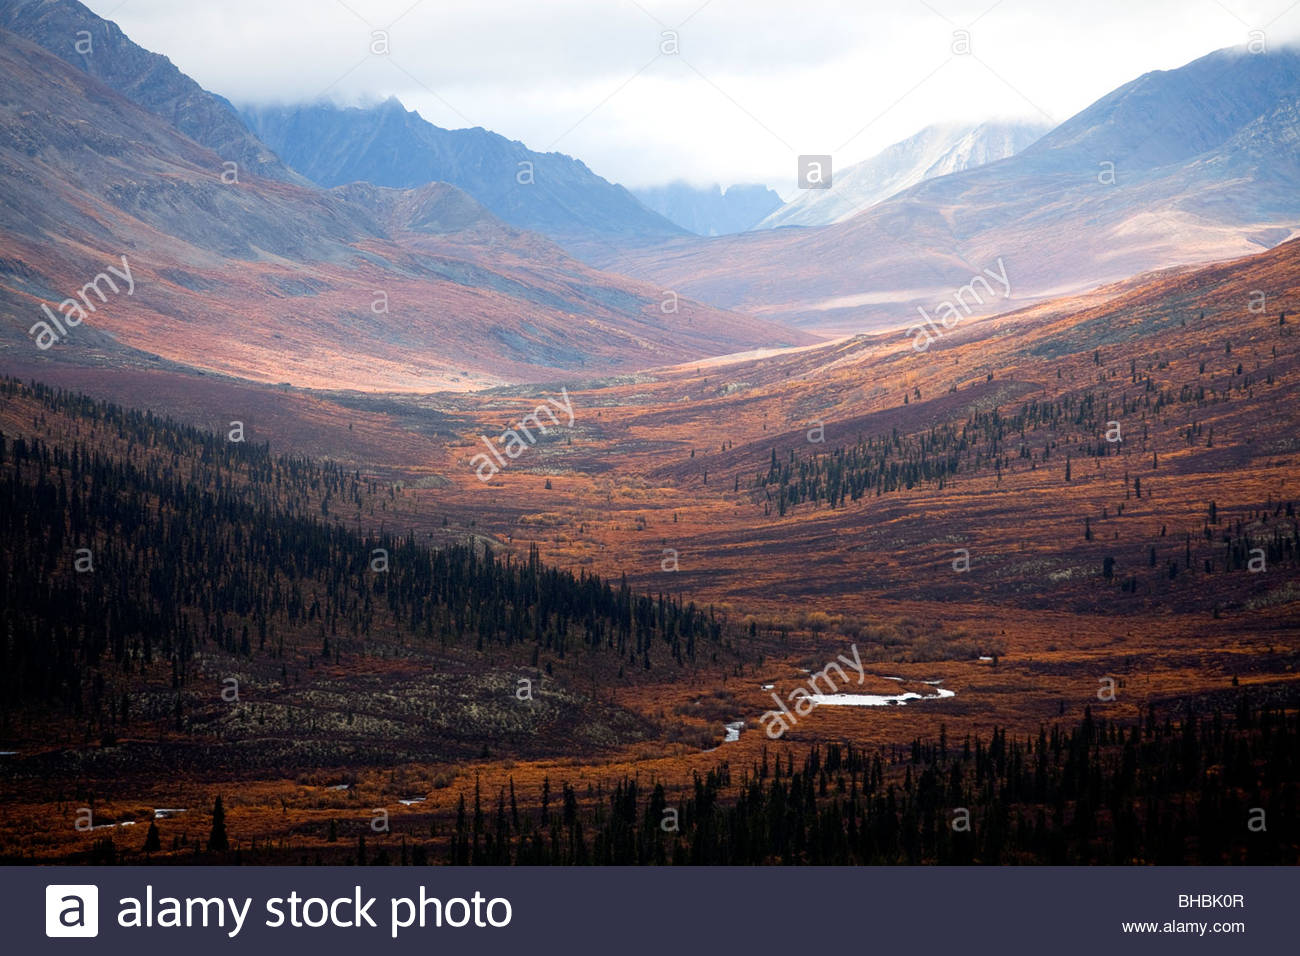 Canada canadian Dempster Highway Indian summer, leave; leaves; yellow; autumn nature scenic The Yukon Territory - Stock Image